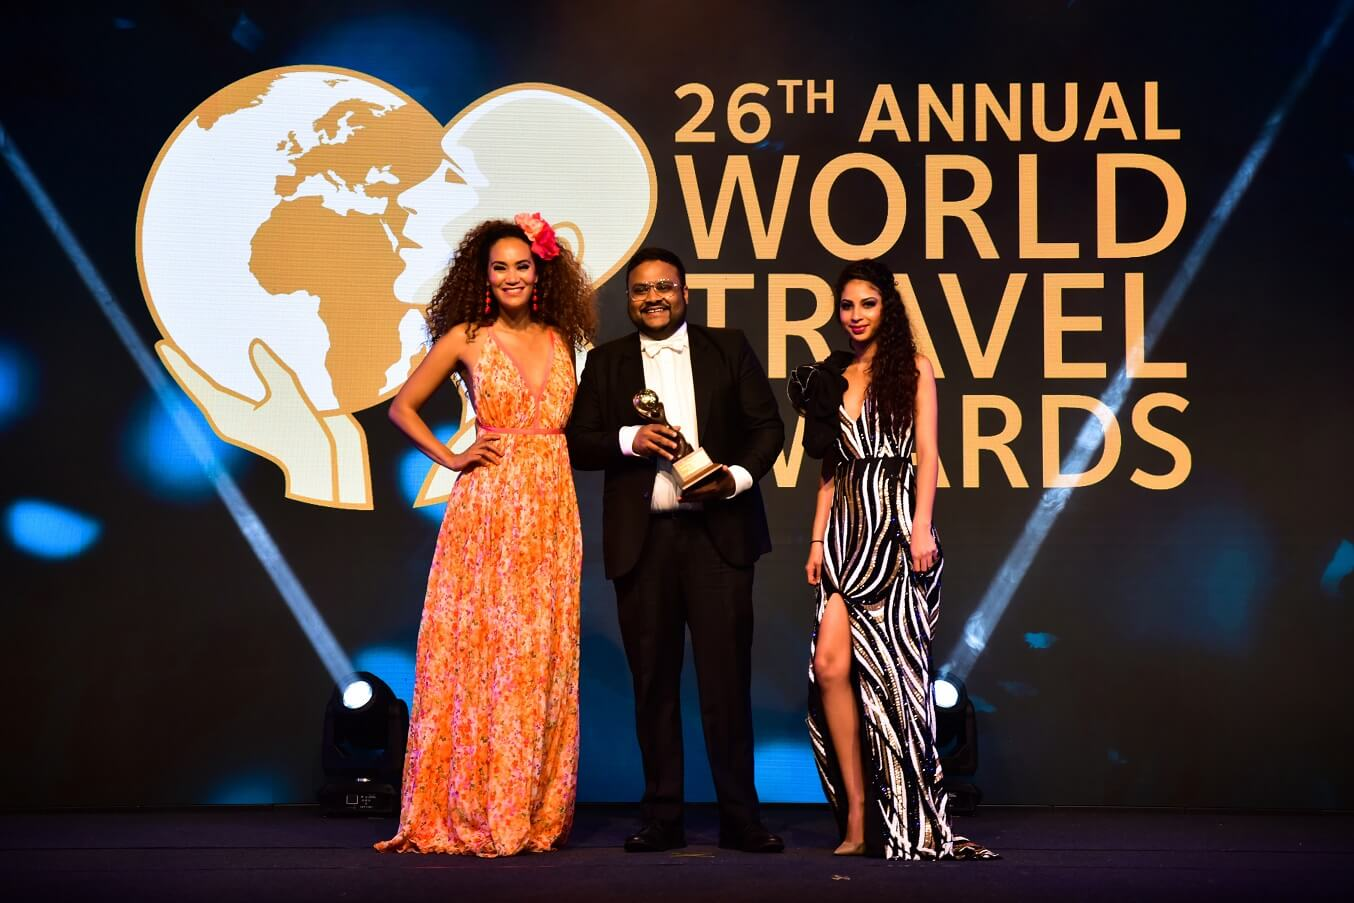 Premier Destinations wins Maldives' Leading Luxury Tour Operator at World Travel Awards